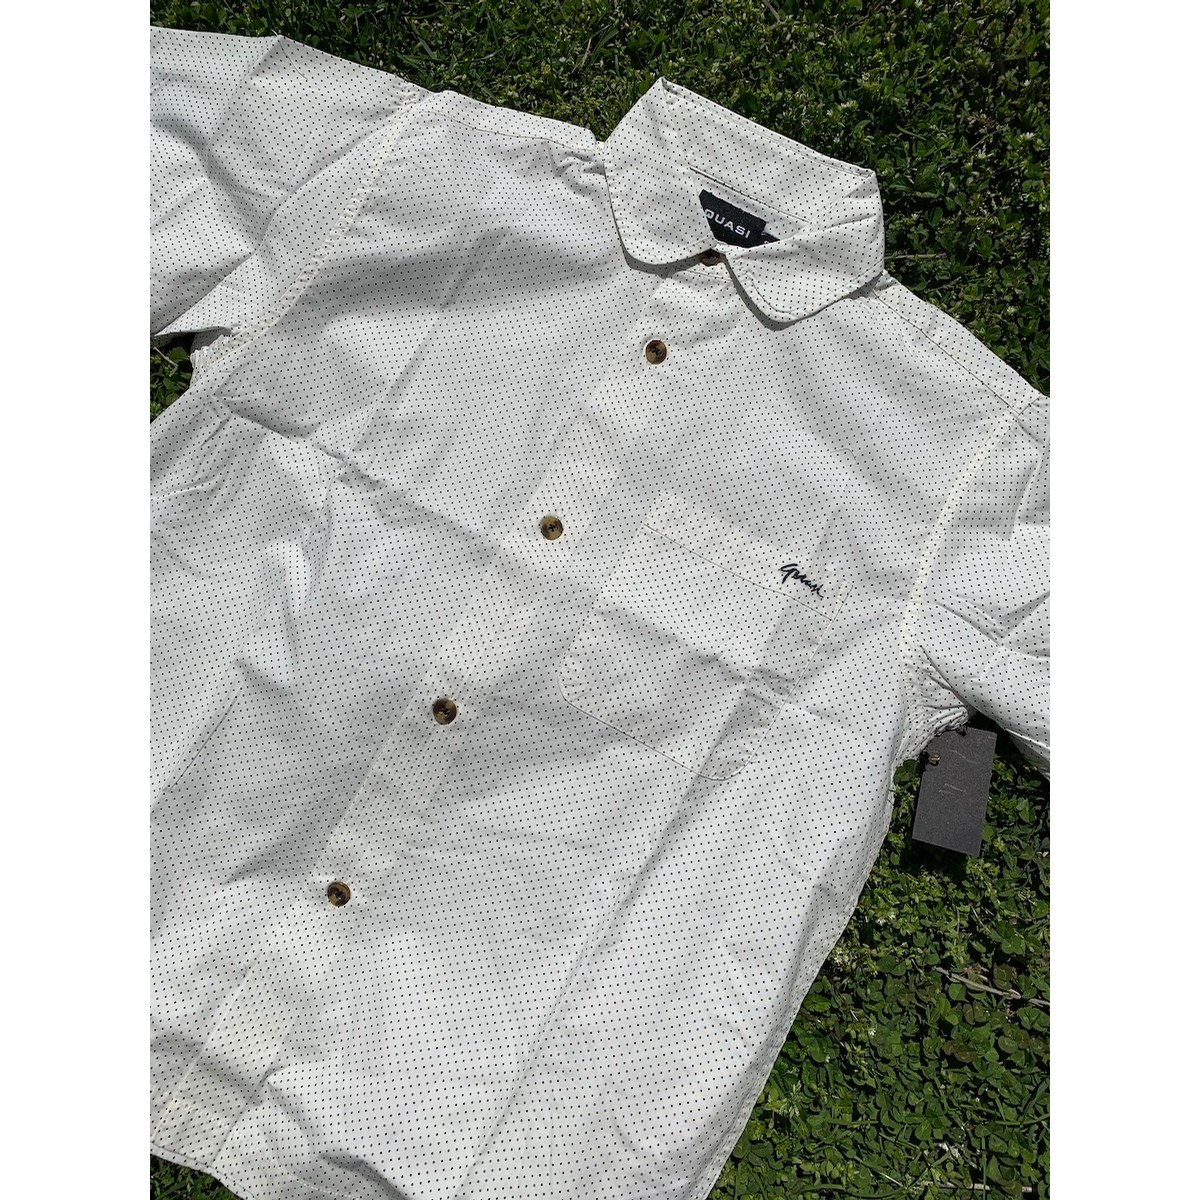 Pdot Button Up